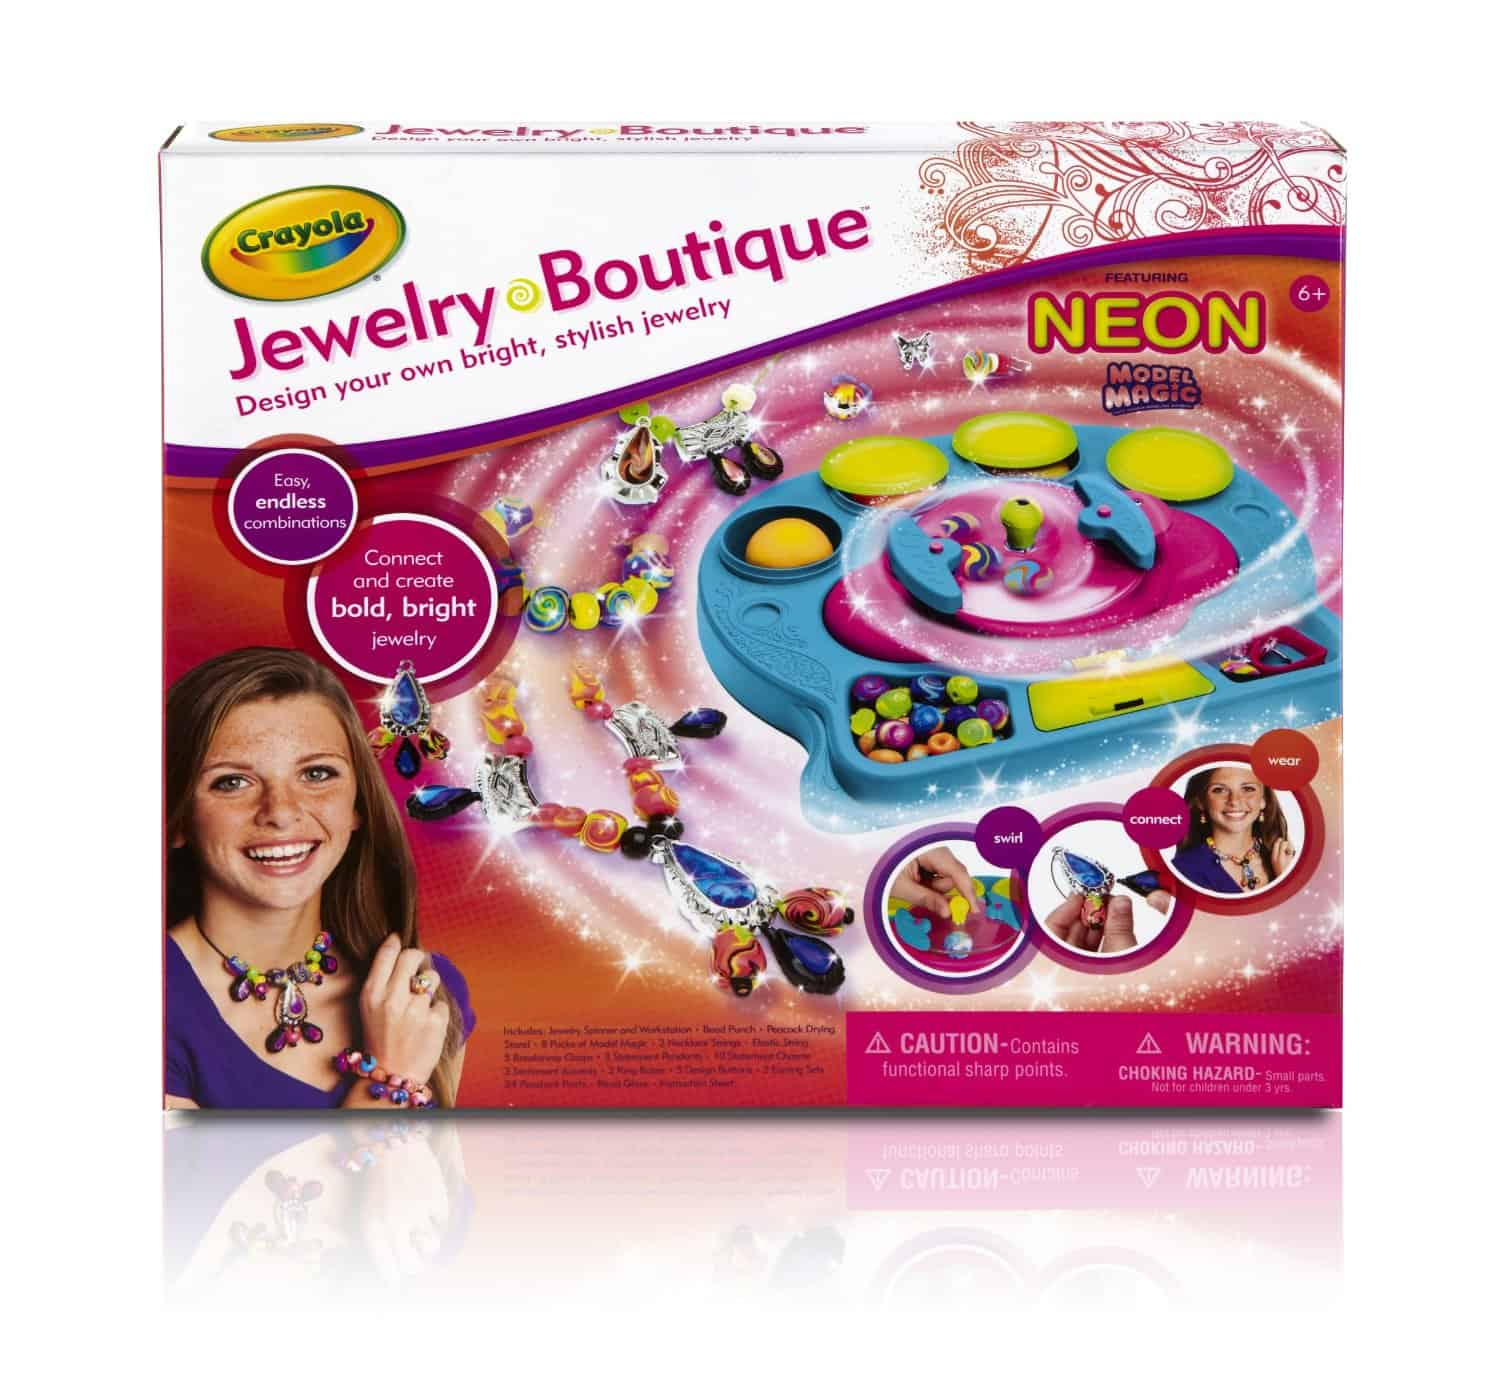 crayola-jewelry-boutique